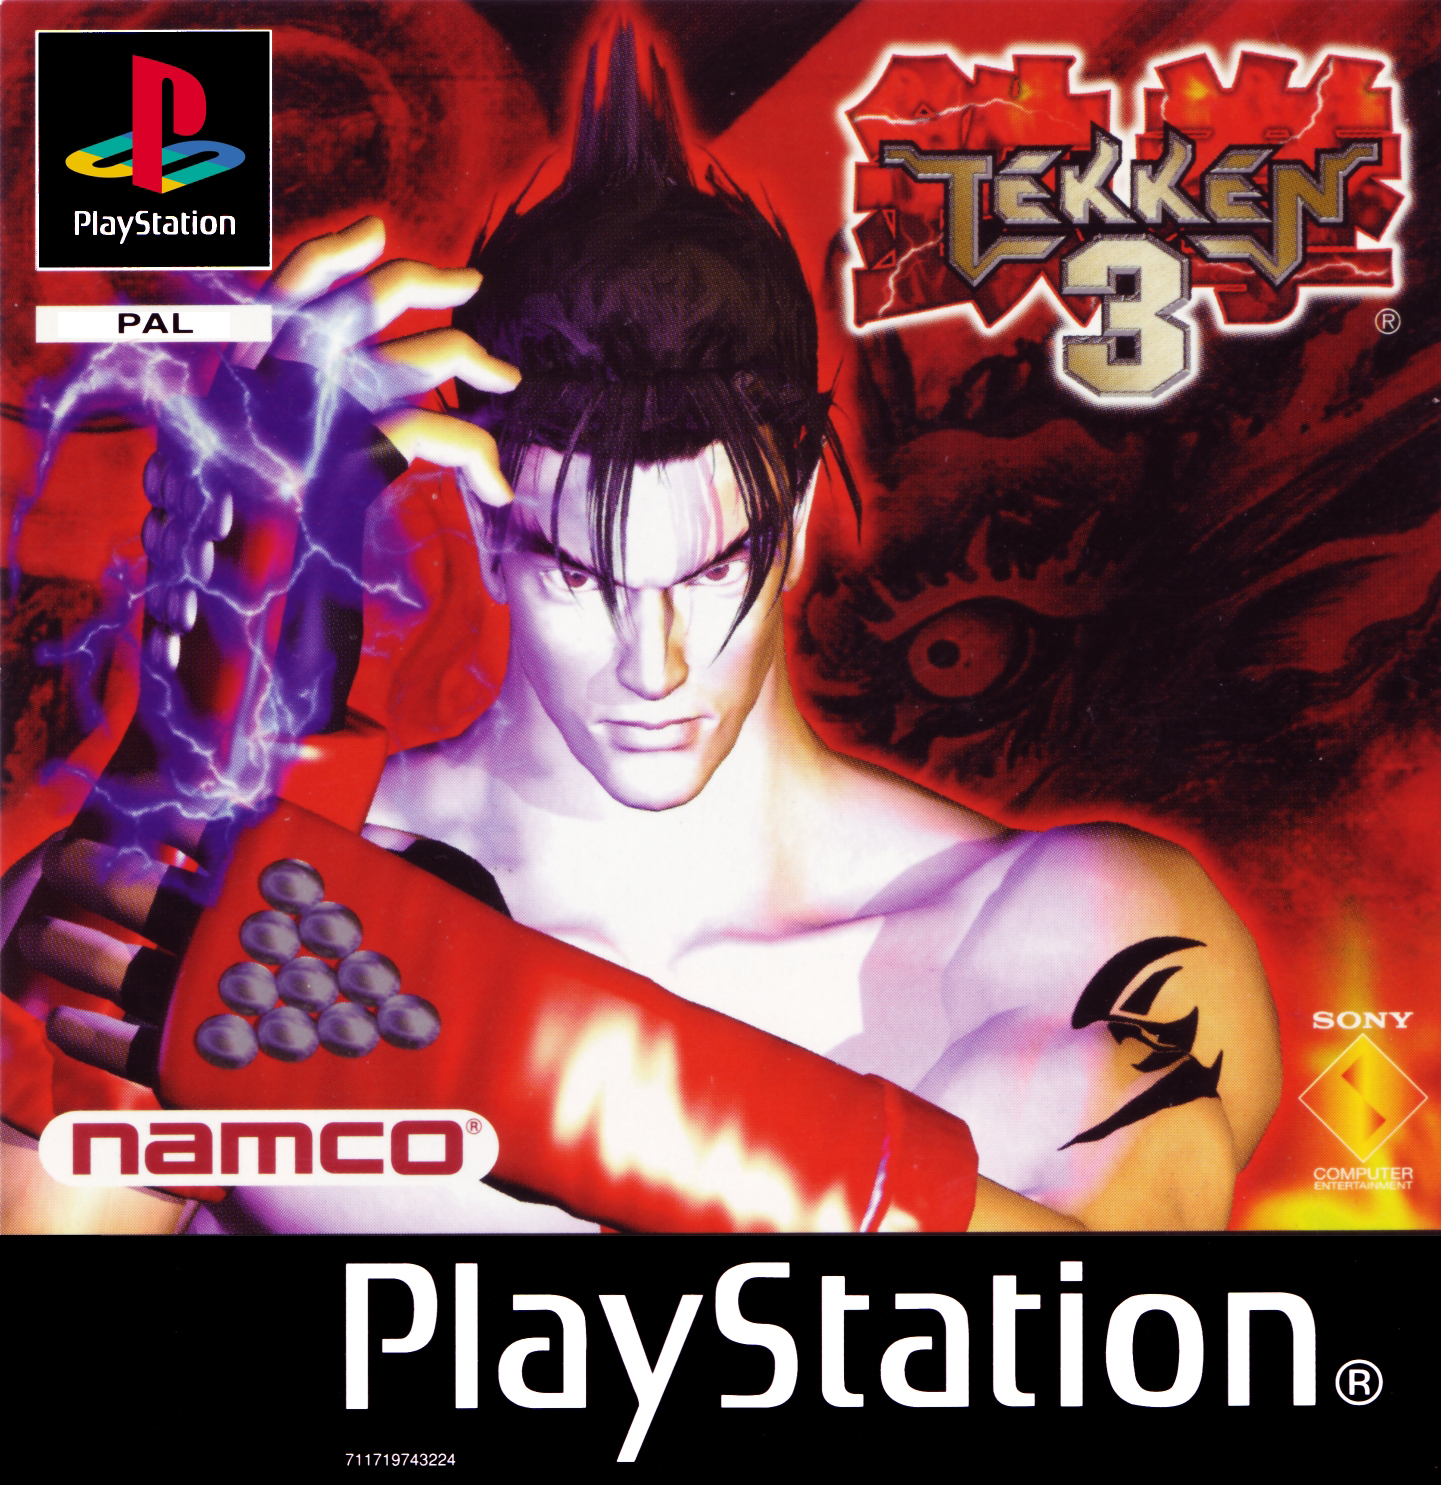 Tekken 3 [SCES-01237] ROM - Playstation (PS1) | Emulator Games